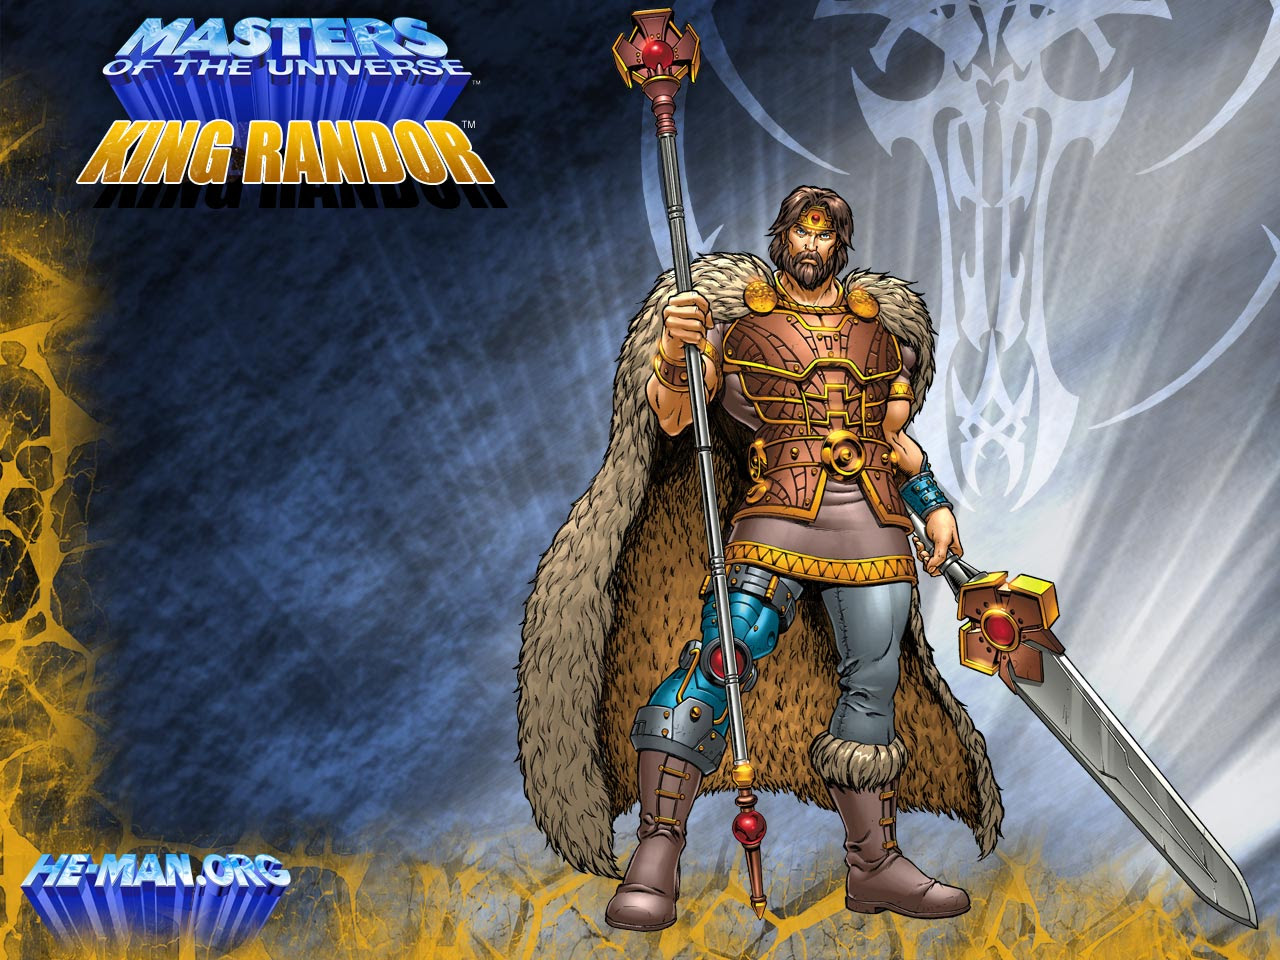 http://www.he-man.org/assets/images/home_news/king-randor_1280_full.jpg